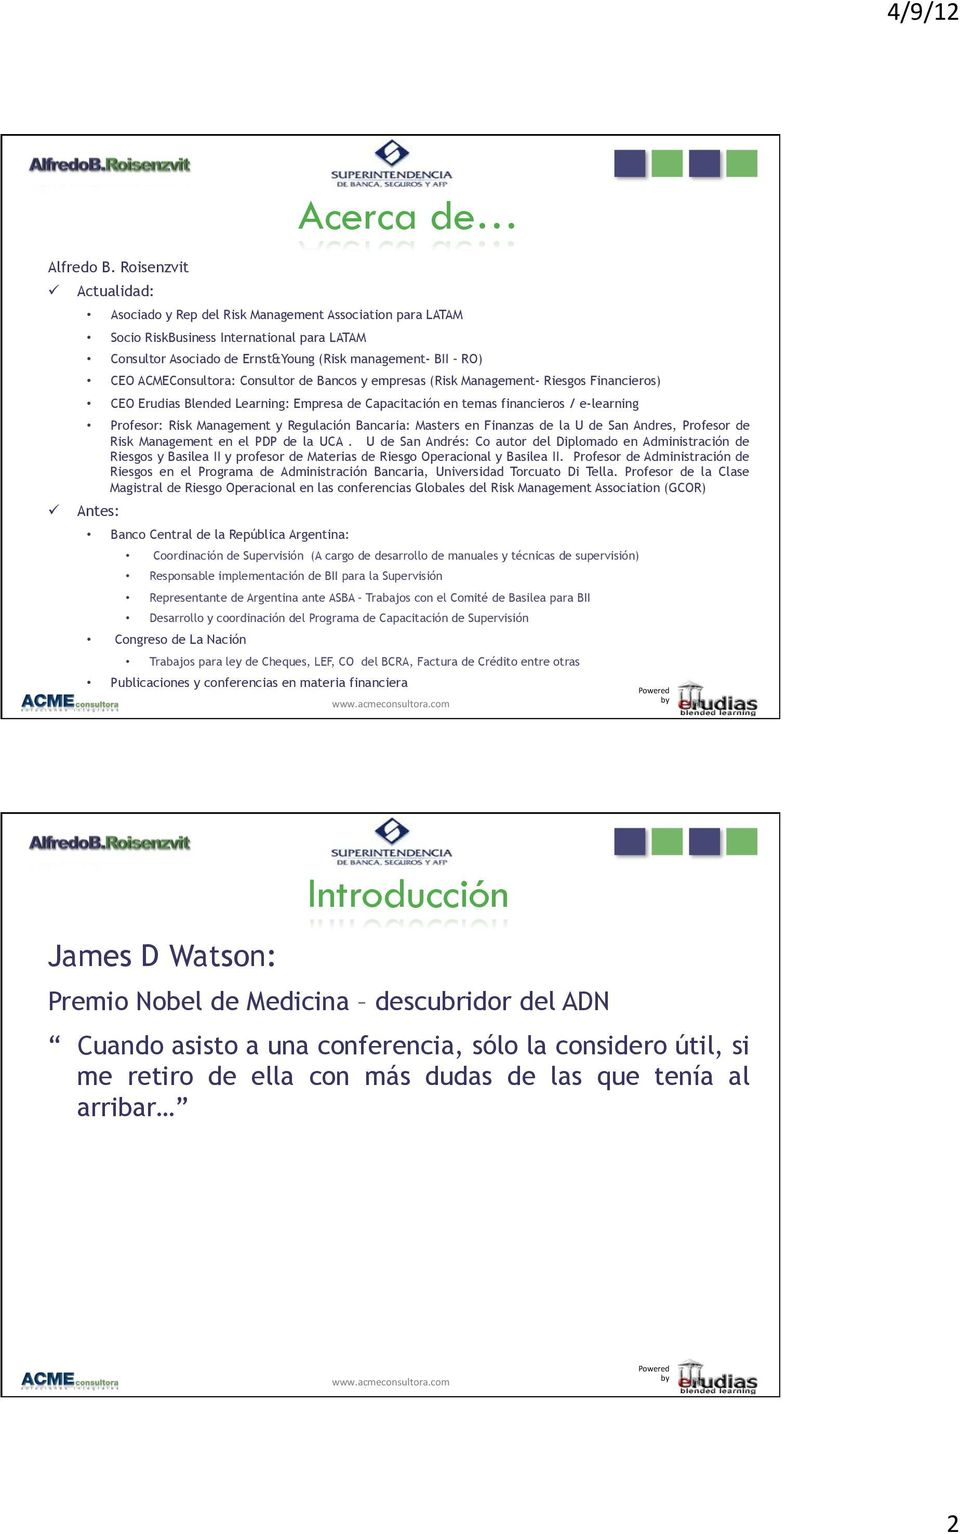 CEO ACMEConsultora: Consultor de Bancos y empresas (Risk Management- Riesgos Financieros) CEO Erudias Blended Learning: Empresa de Capacitación en temas financieros / e-learning Profesor: Risk